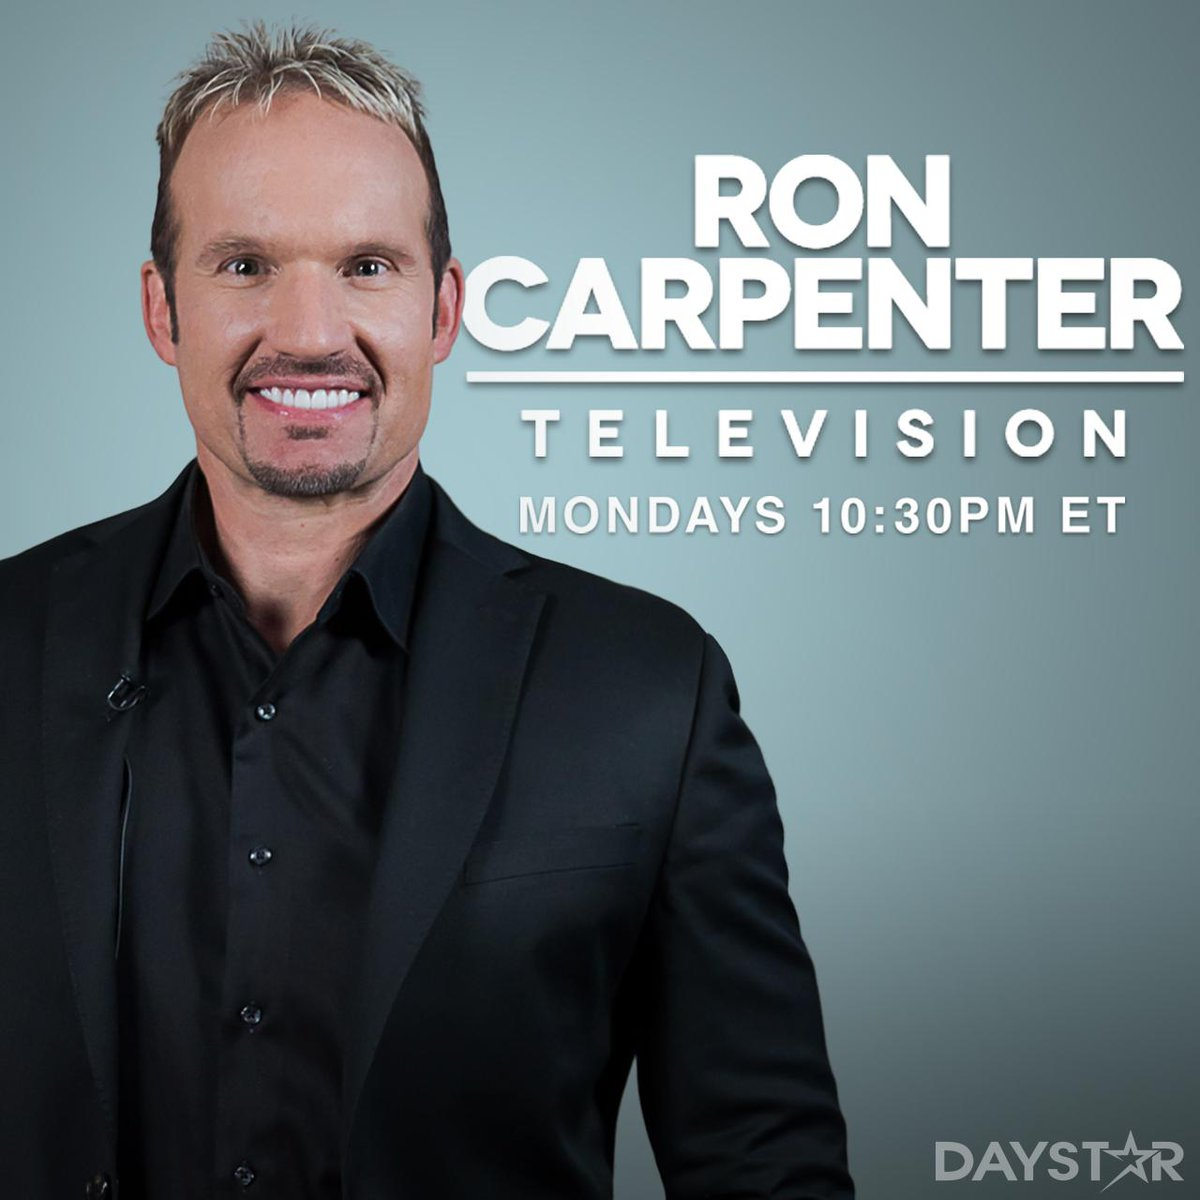 Don't miss our new program @RonCarpenter Television tonight at 10:30pm ET! Local listings at http://t.co/hS5ynRlXX3!